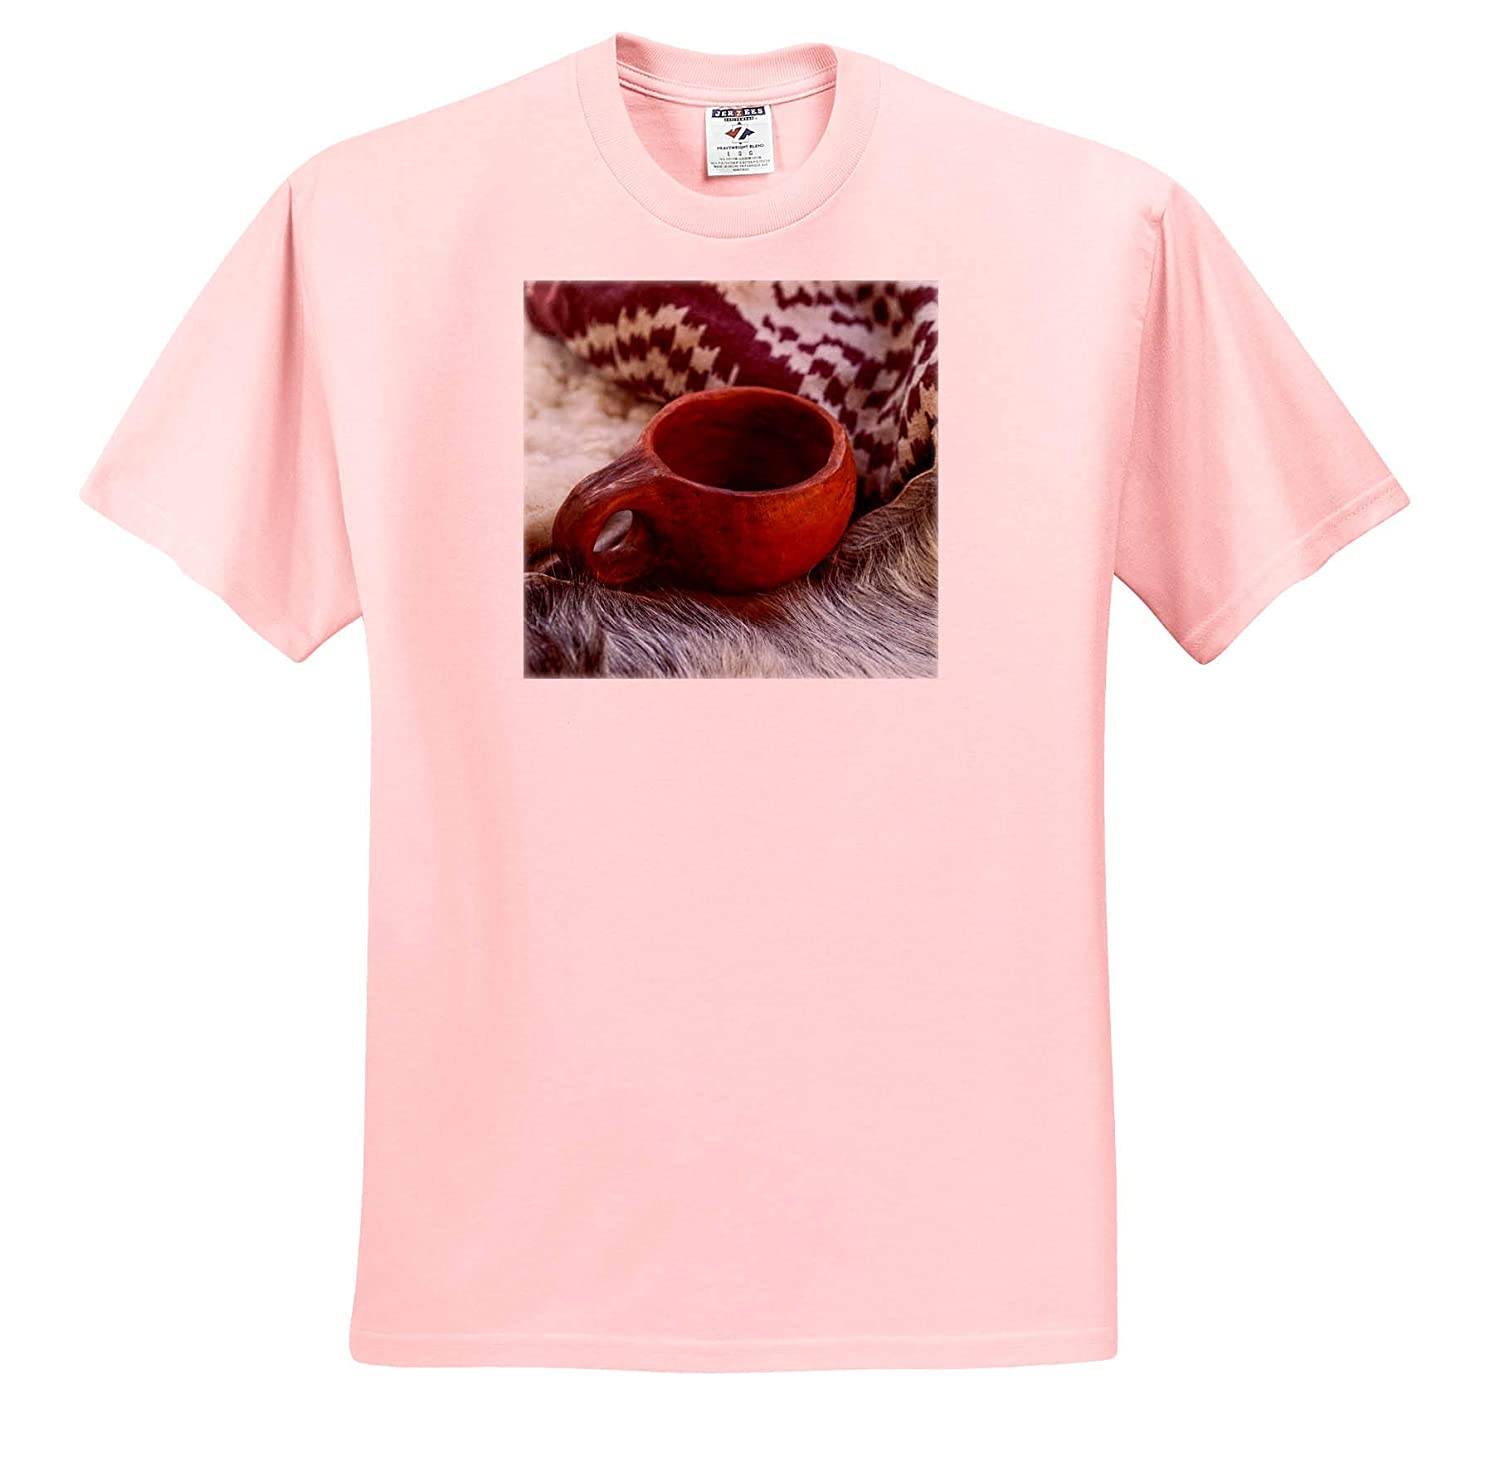 3dRose Alexis Photography Objects Misc T-Shirts Textile Cloth Animal Furs - Image of an Ancient Ceramic Mug